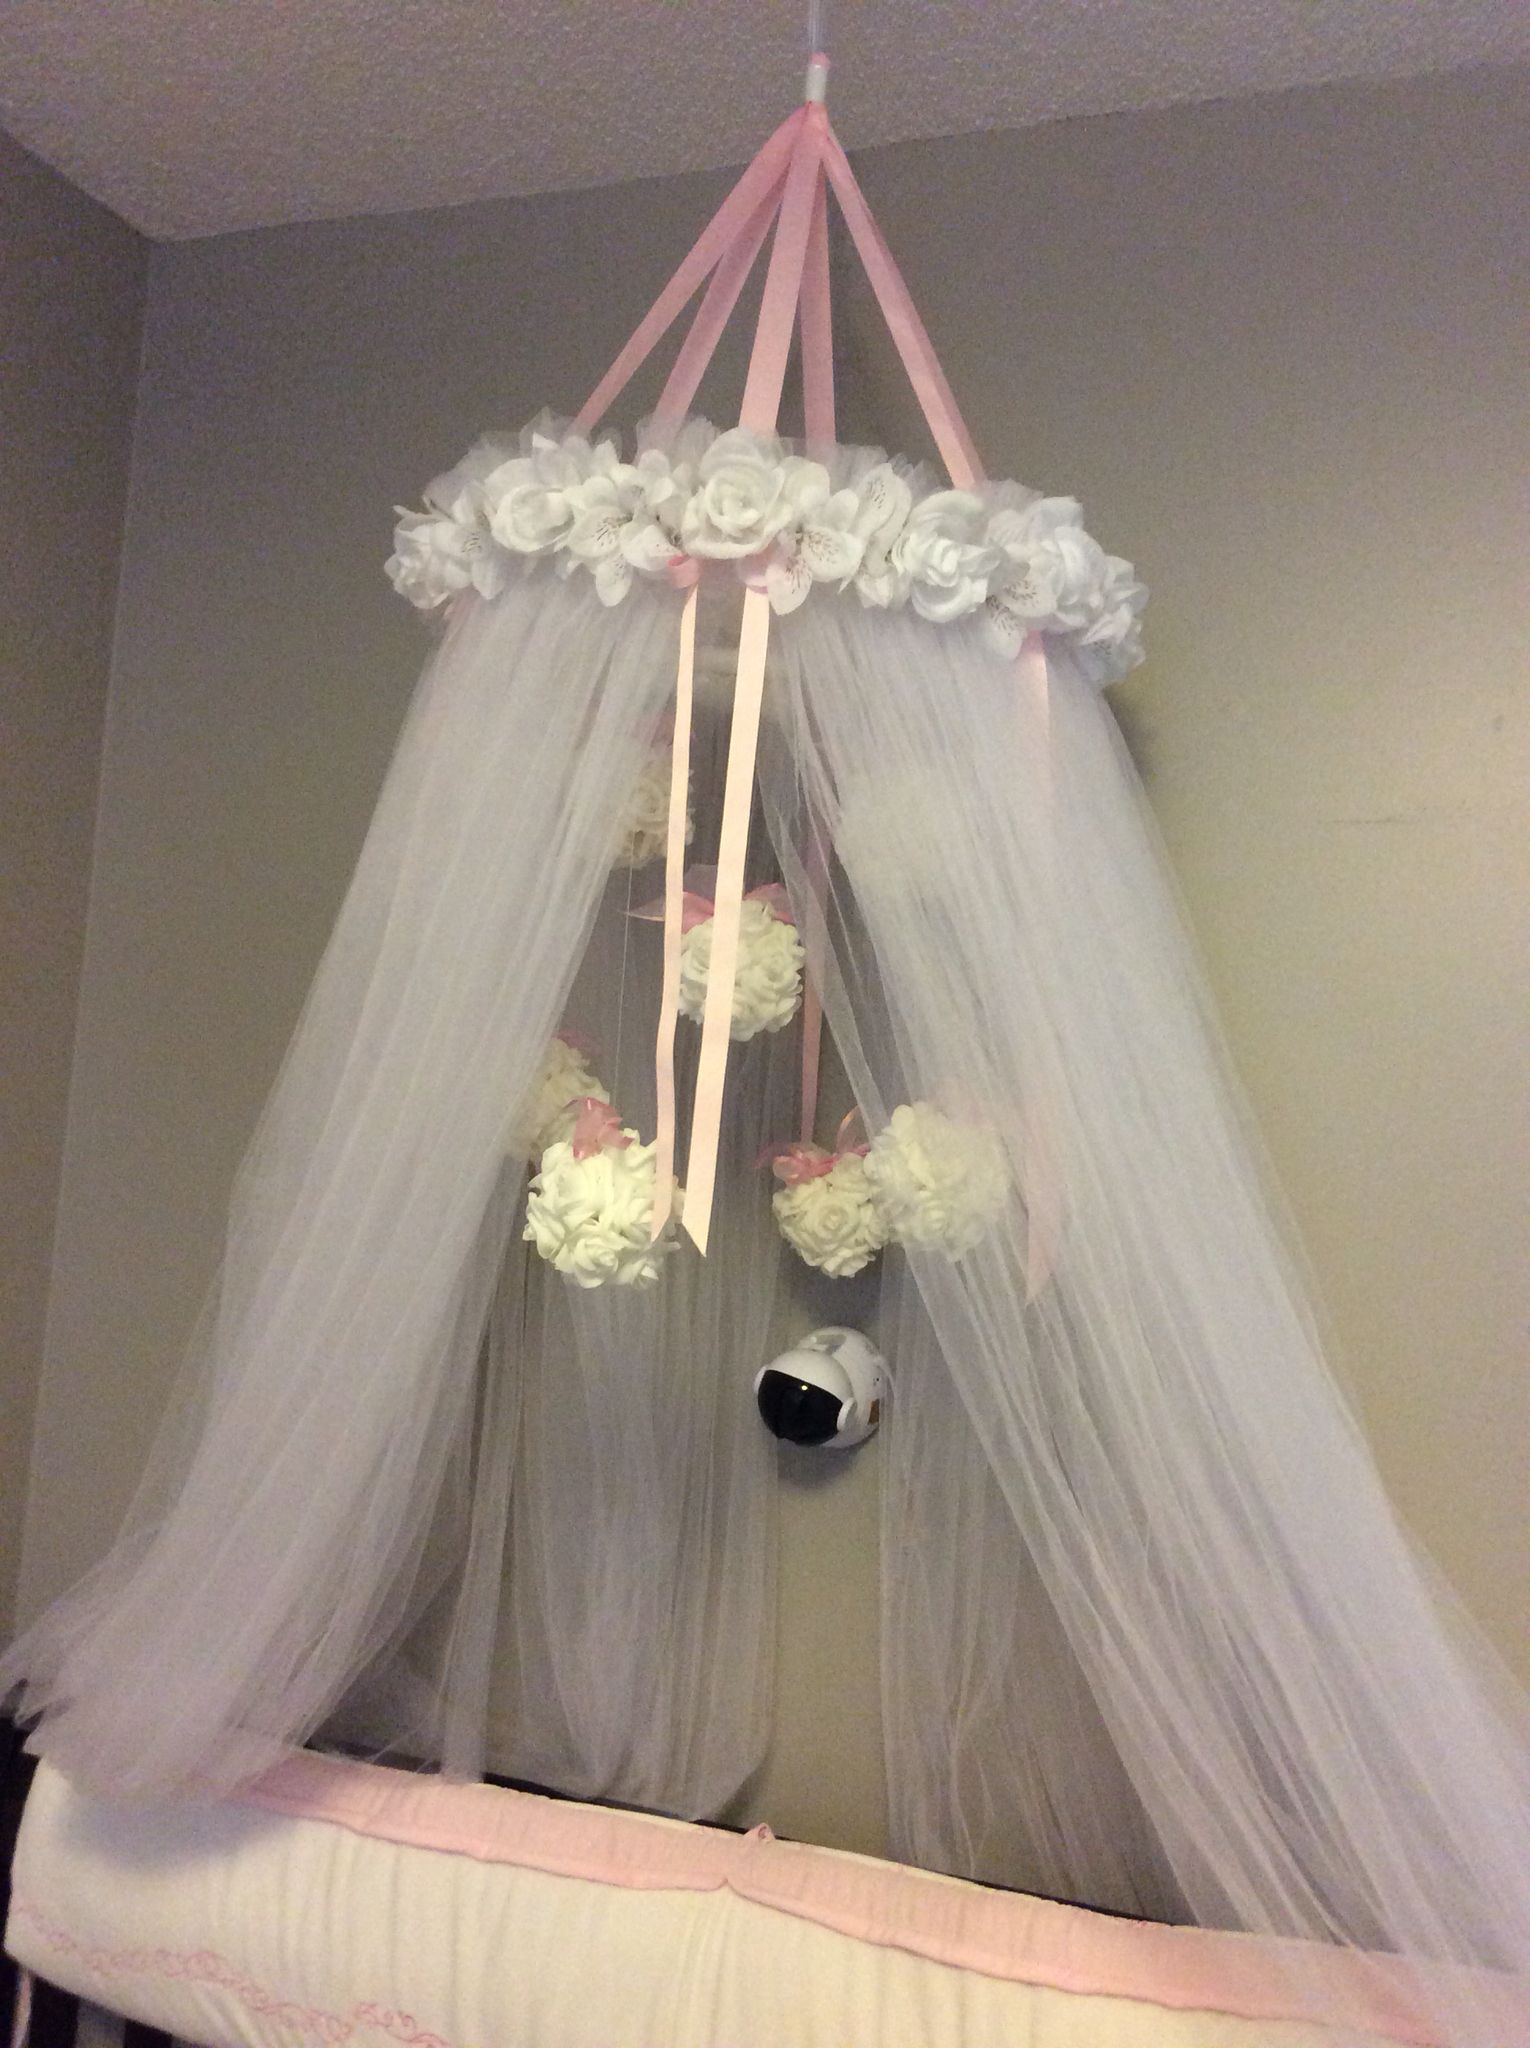 Diy Baby Princess Canopy Over Crib Girl Kadence